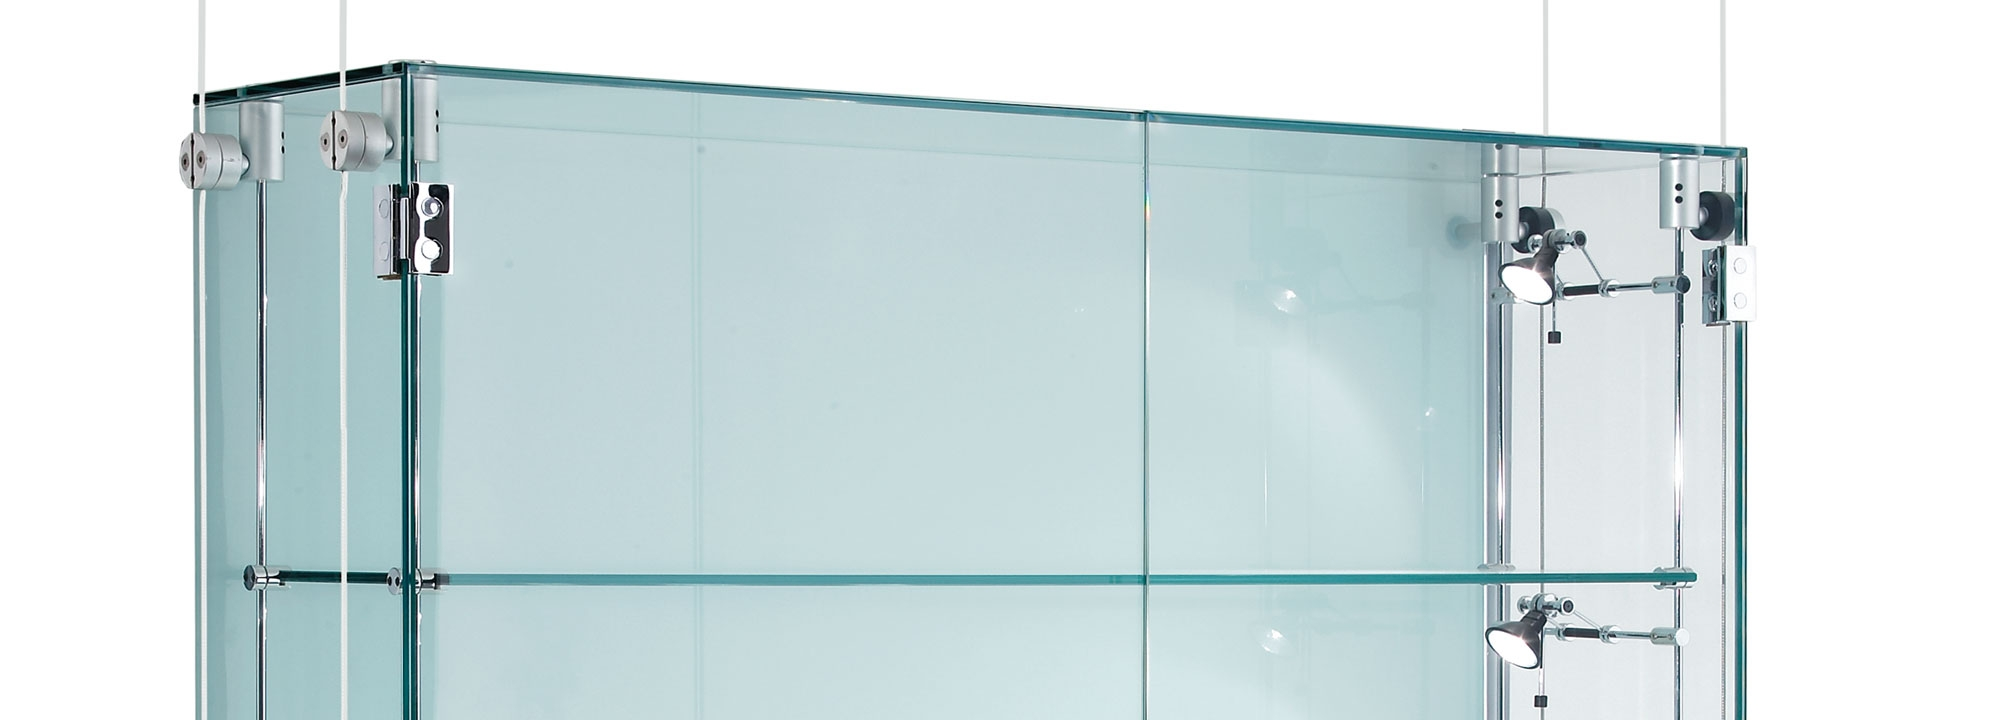 Suspended Glass Display Cabinets Custom Made Shopkit Group Uk Pertaining To Cable Suspended Glass Shelves (Image 11 of 15)